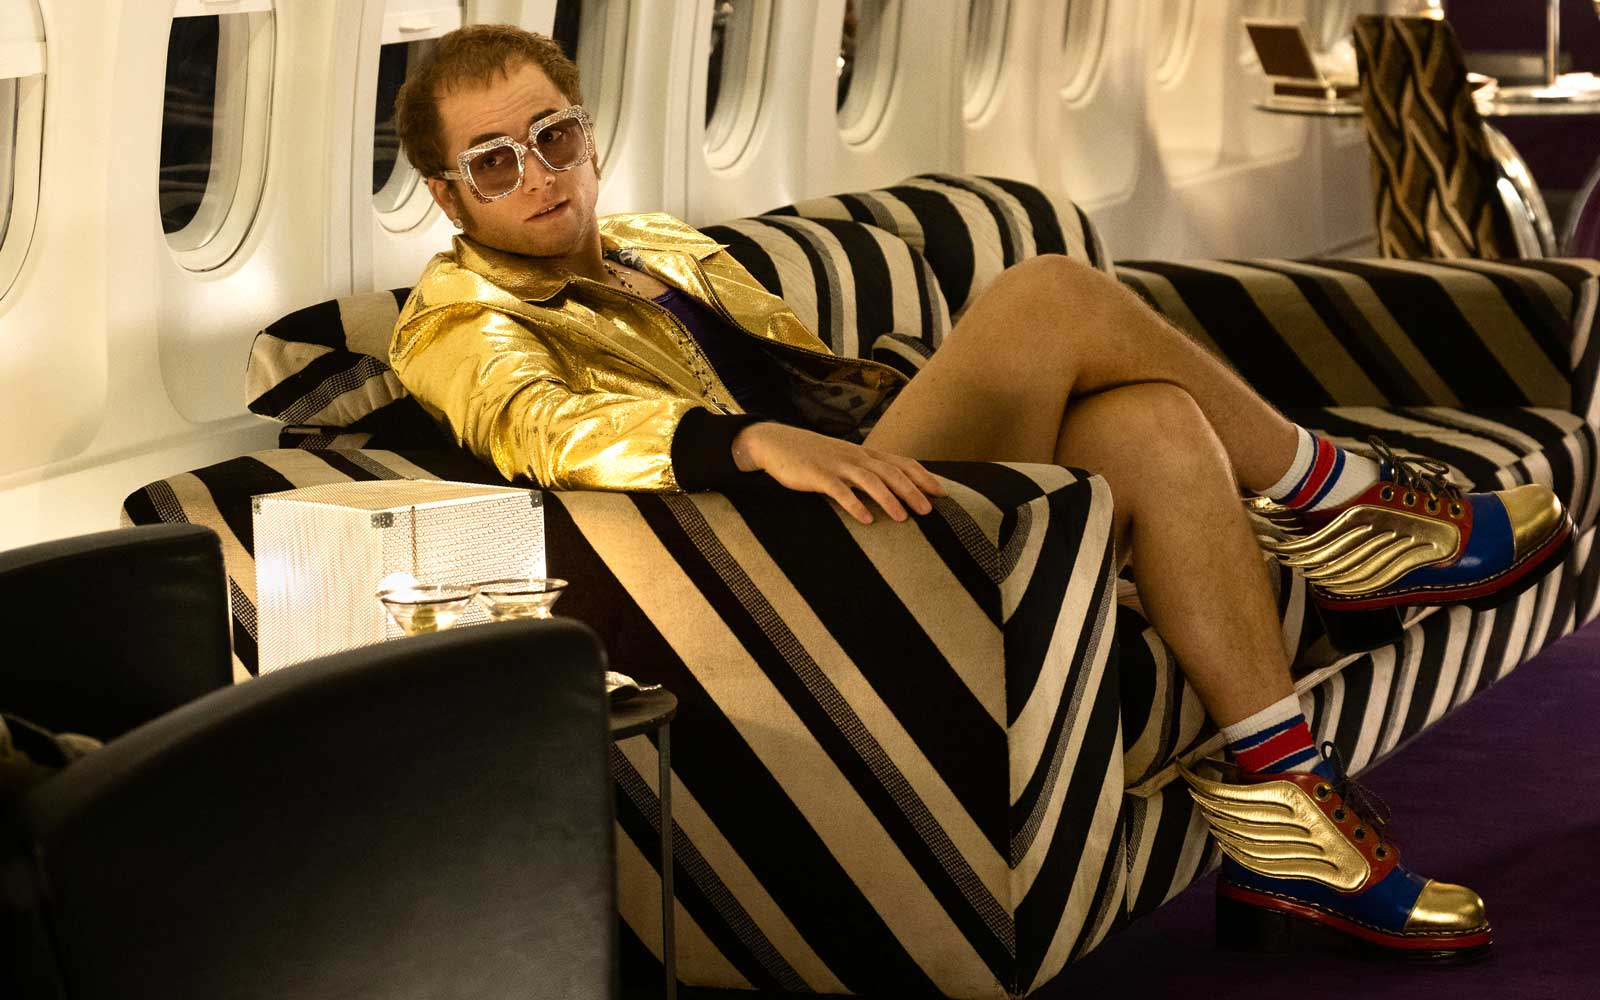 Taron Egerton in Rocketman from Paramount Pictures.